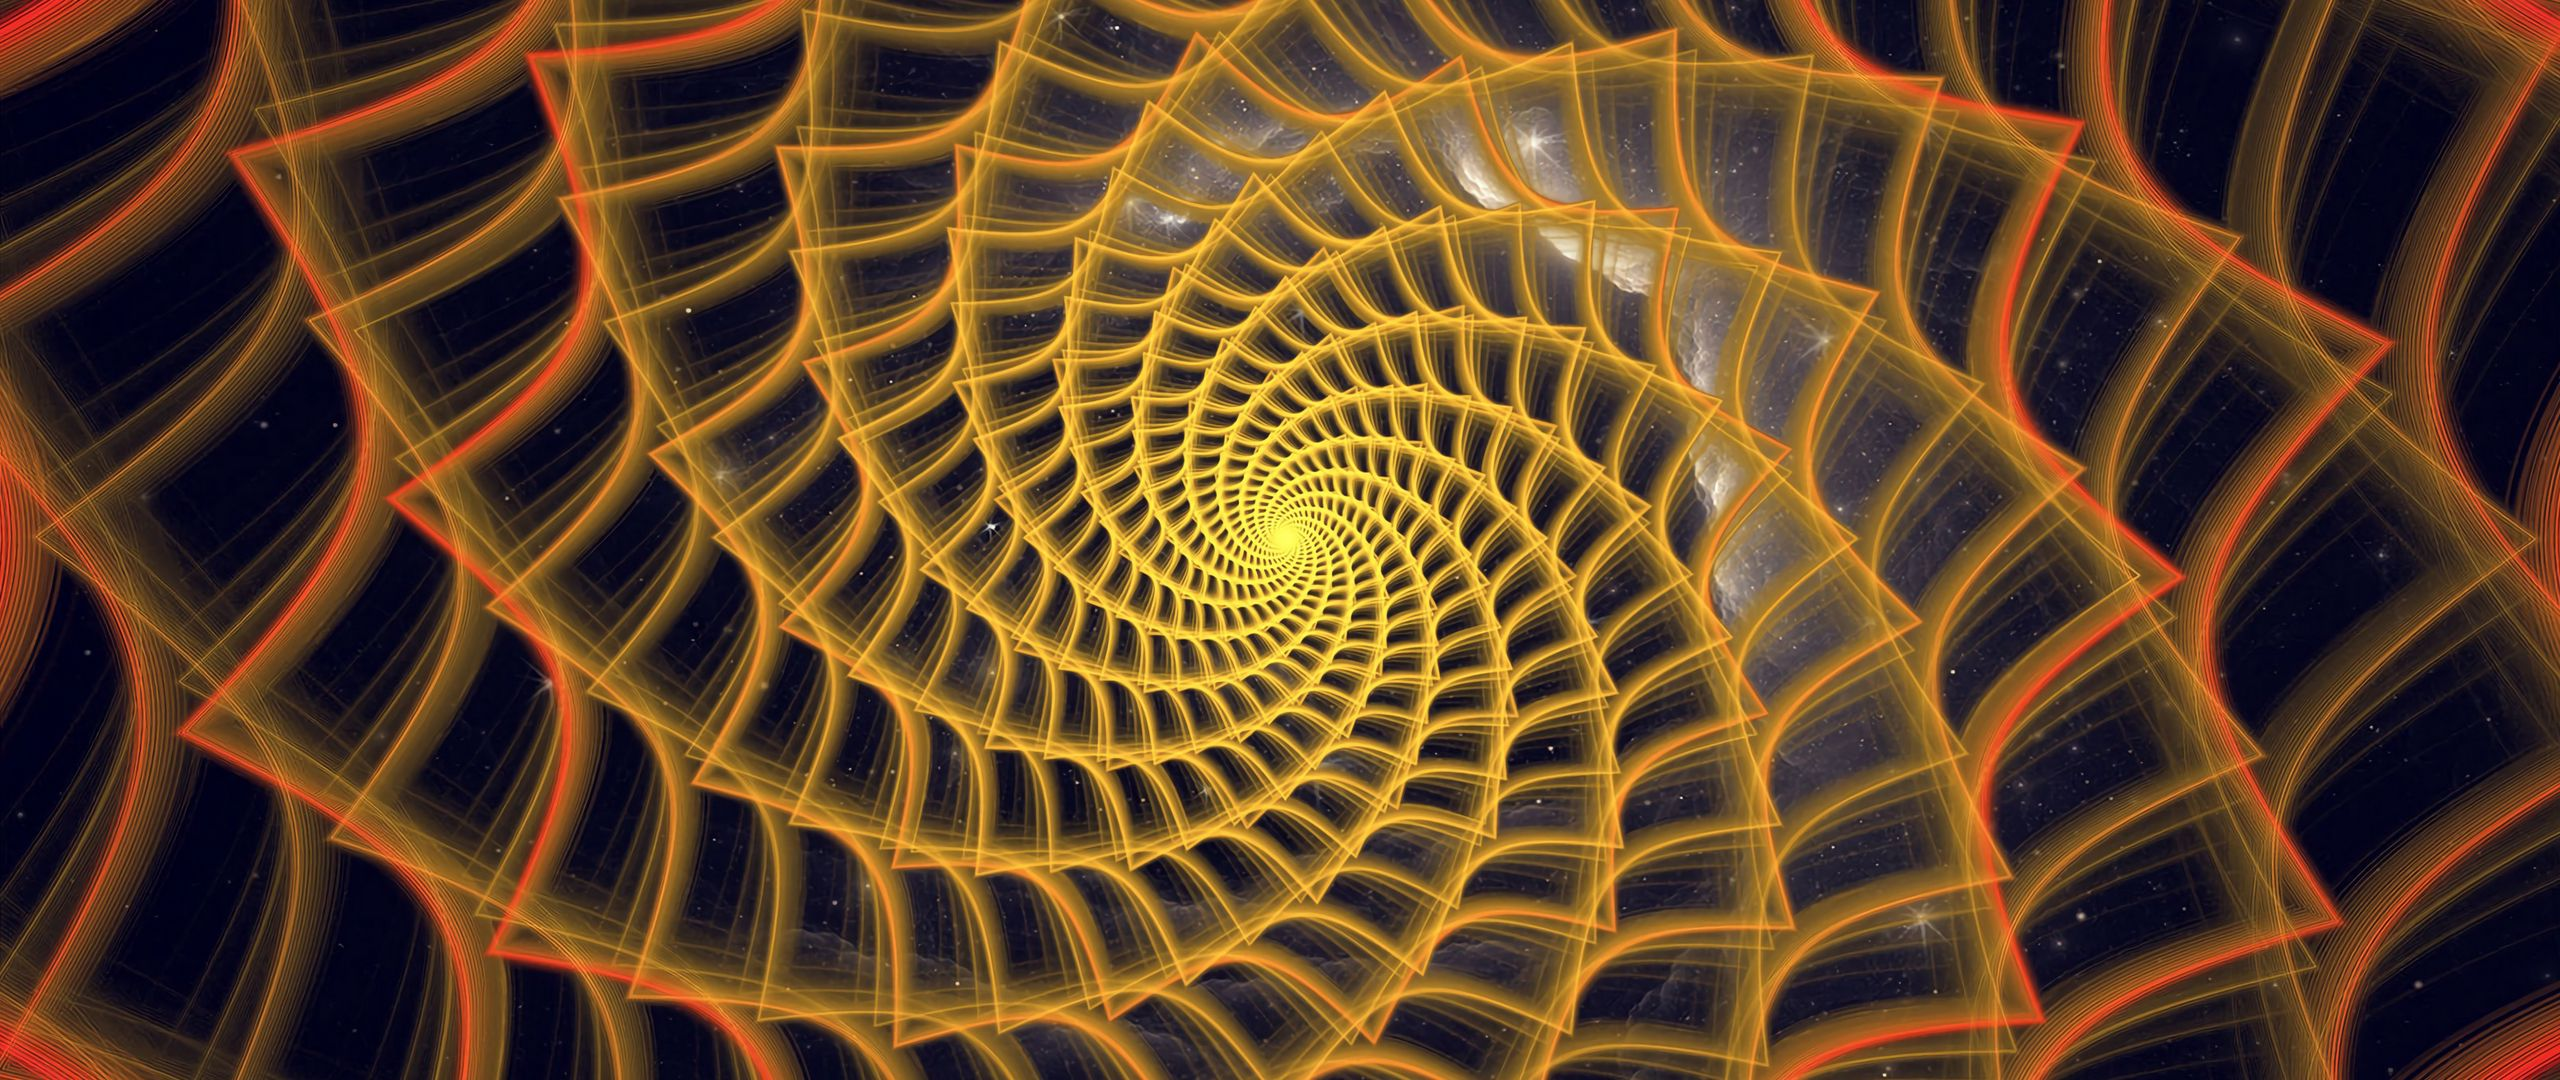 2560x1080 Wallpaper spiral, twisted, tangled, fractal, abstraction